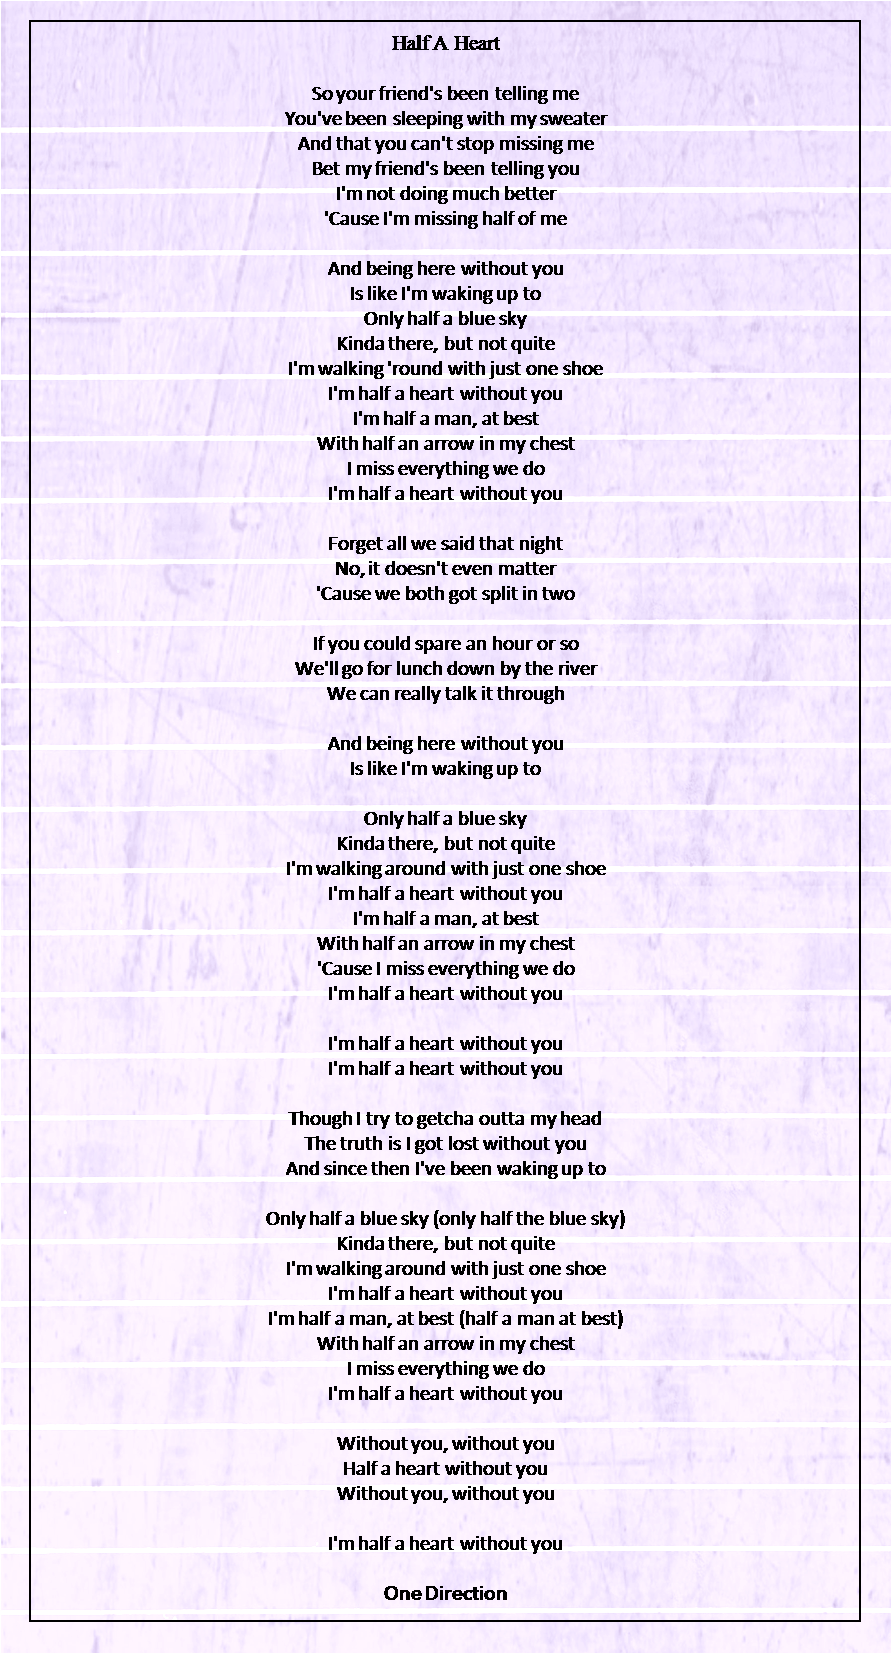 Half A Heart One Direction One Direction Lyrics Summer Love One Direction One Direction Songs